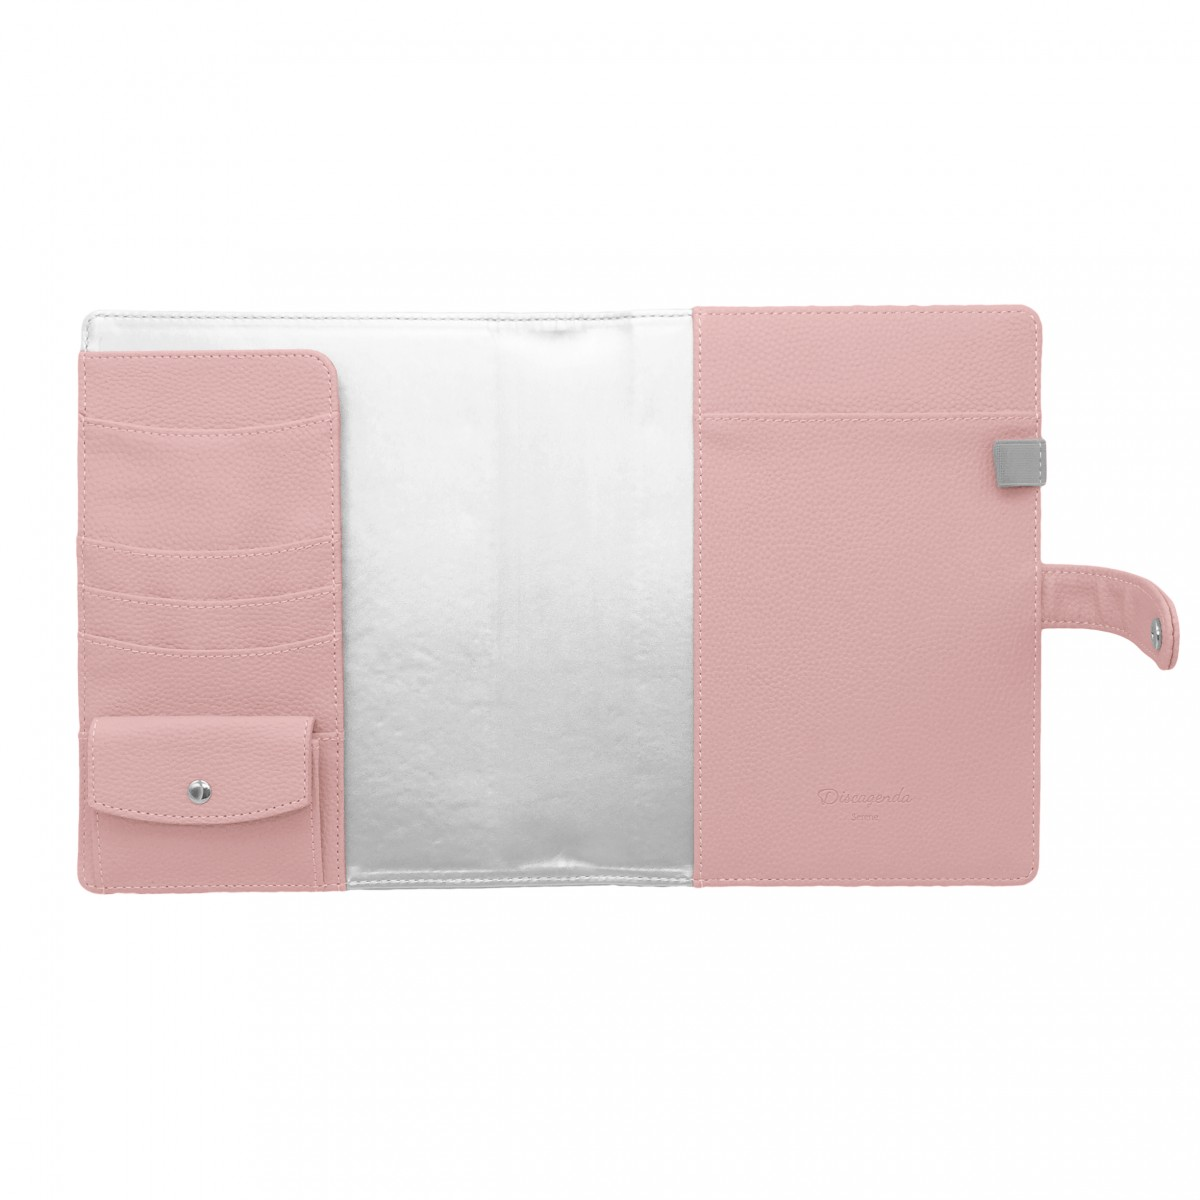 DISCAGENDA SERENE COVER A5 PALE PINK